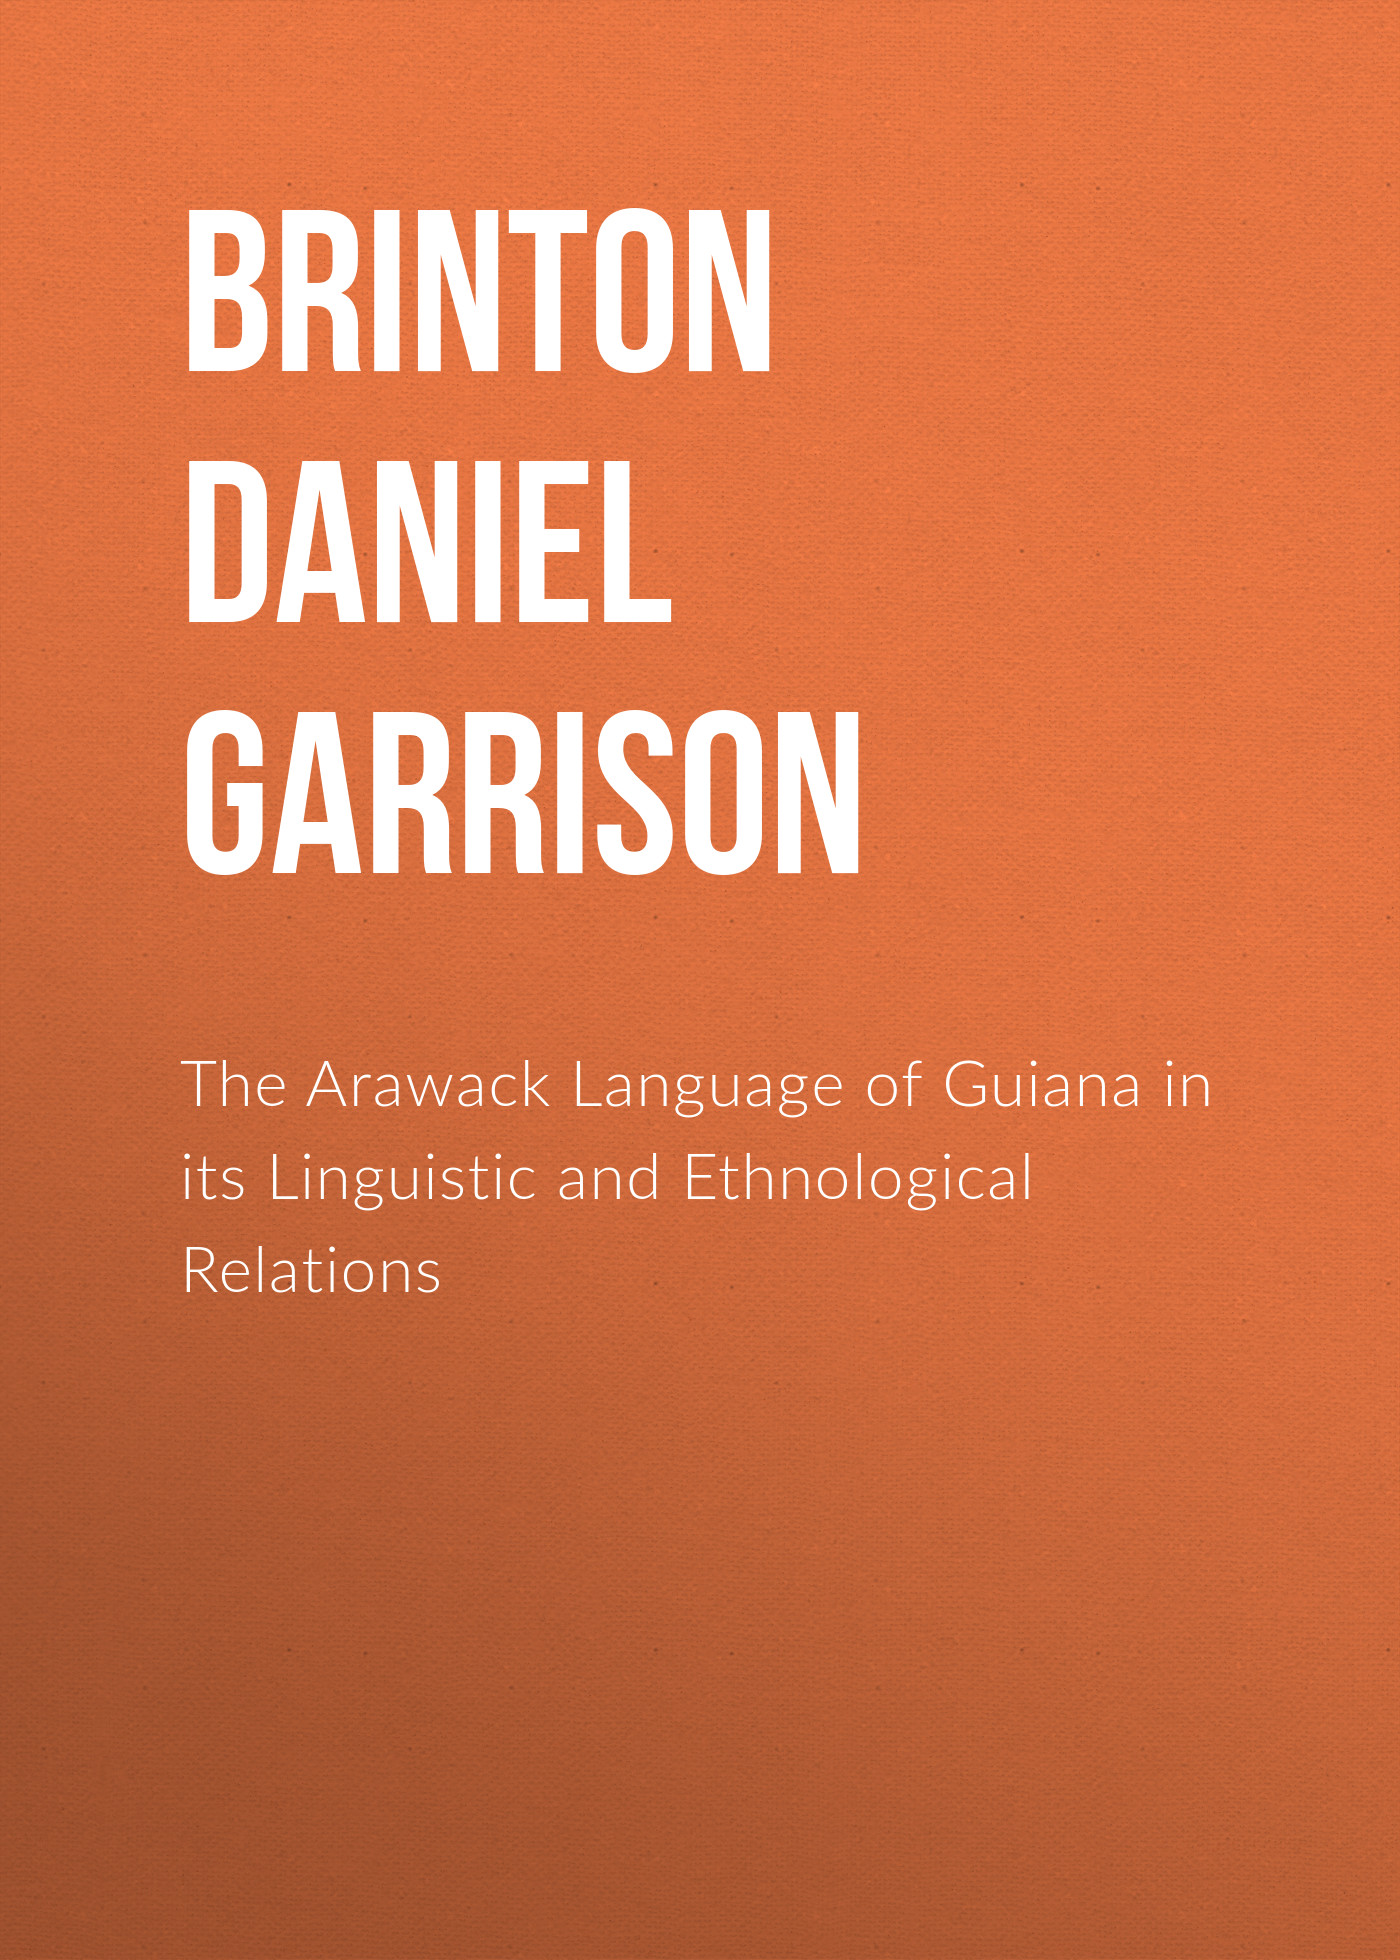 Brinton Daniel Garrison The Arawack Language of Guiana in its Linguistic and Ethnological Relations pak afghan relations in post taliban era